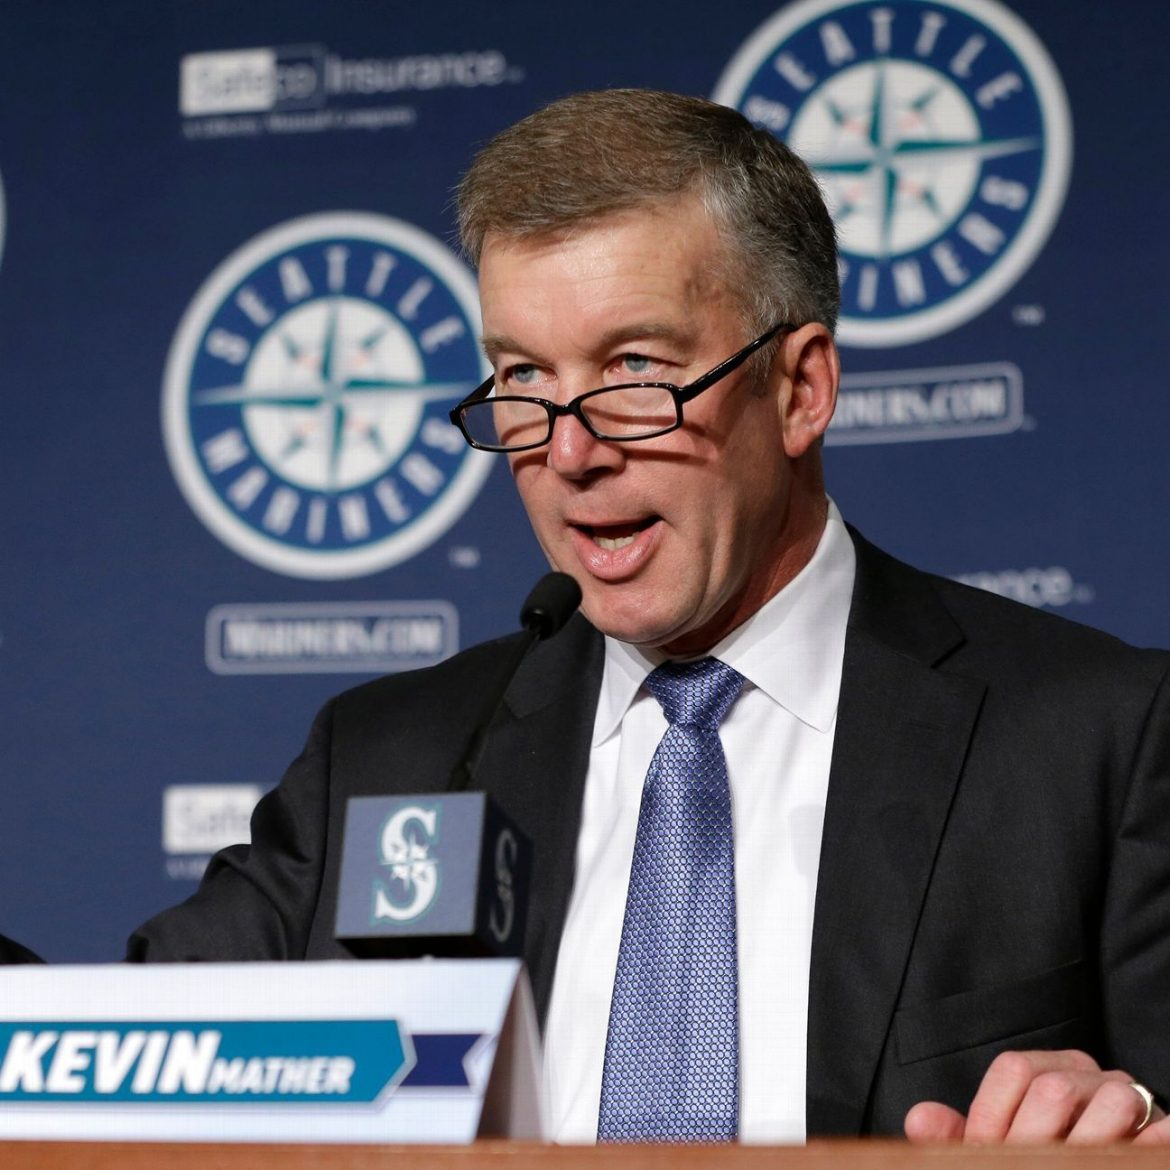 Mariners GM 'embarrassed' by exec's comments